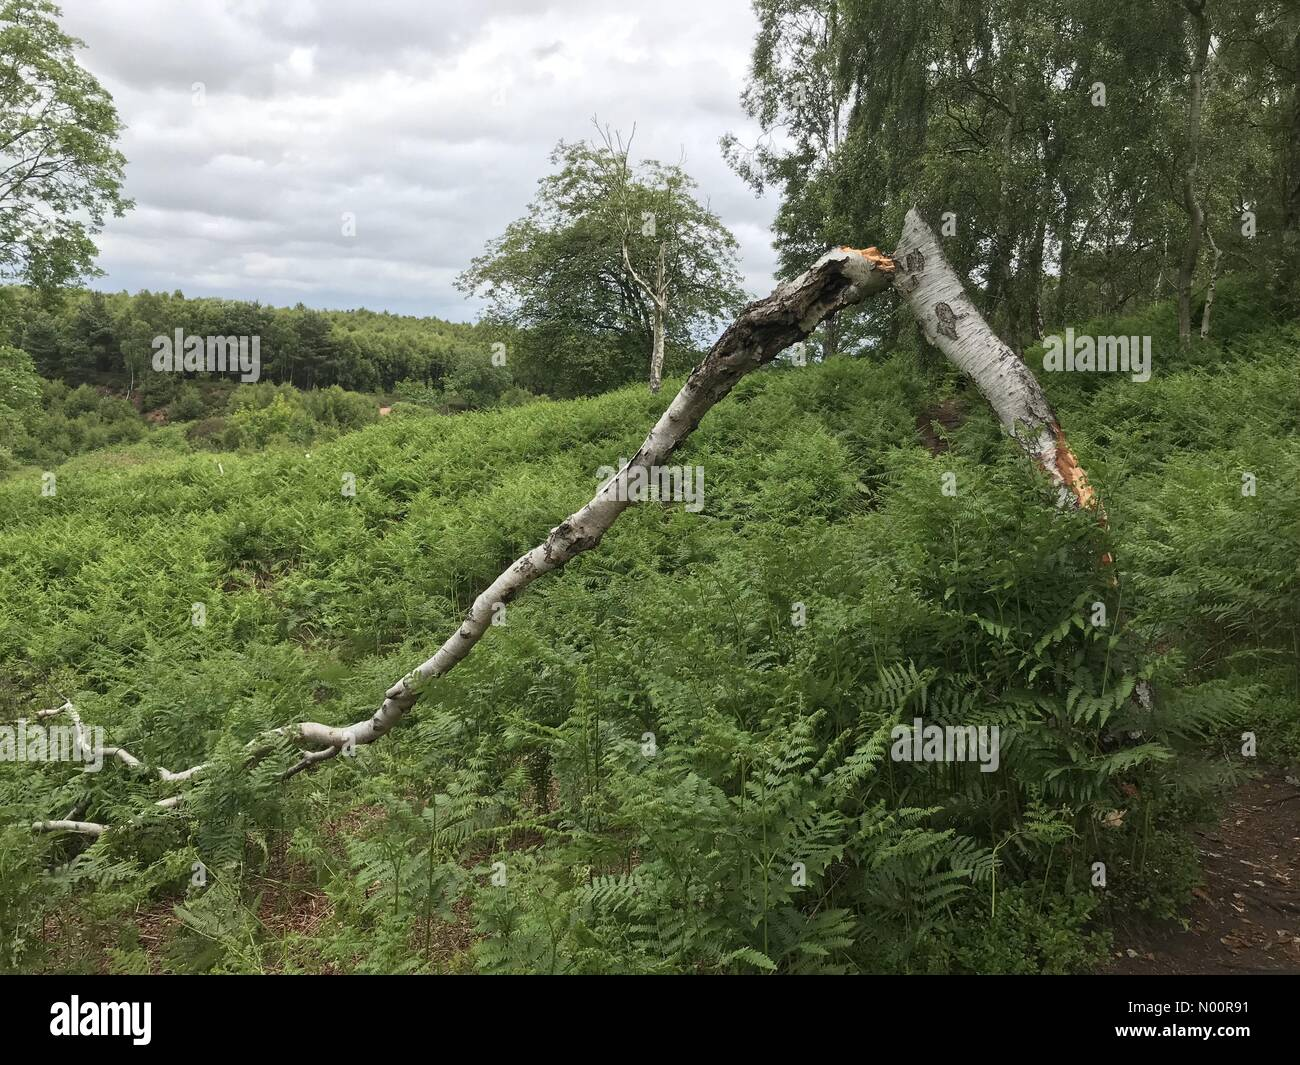 A recent spate of tree vandalism on Cannock Chase, Staffordshire. Tree has been snapped and bark stripped on the lower trunk. Damage occurred Friday 15th June - Stock Image